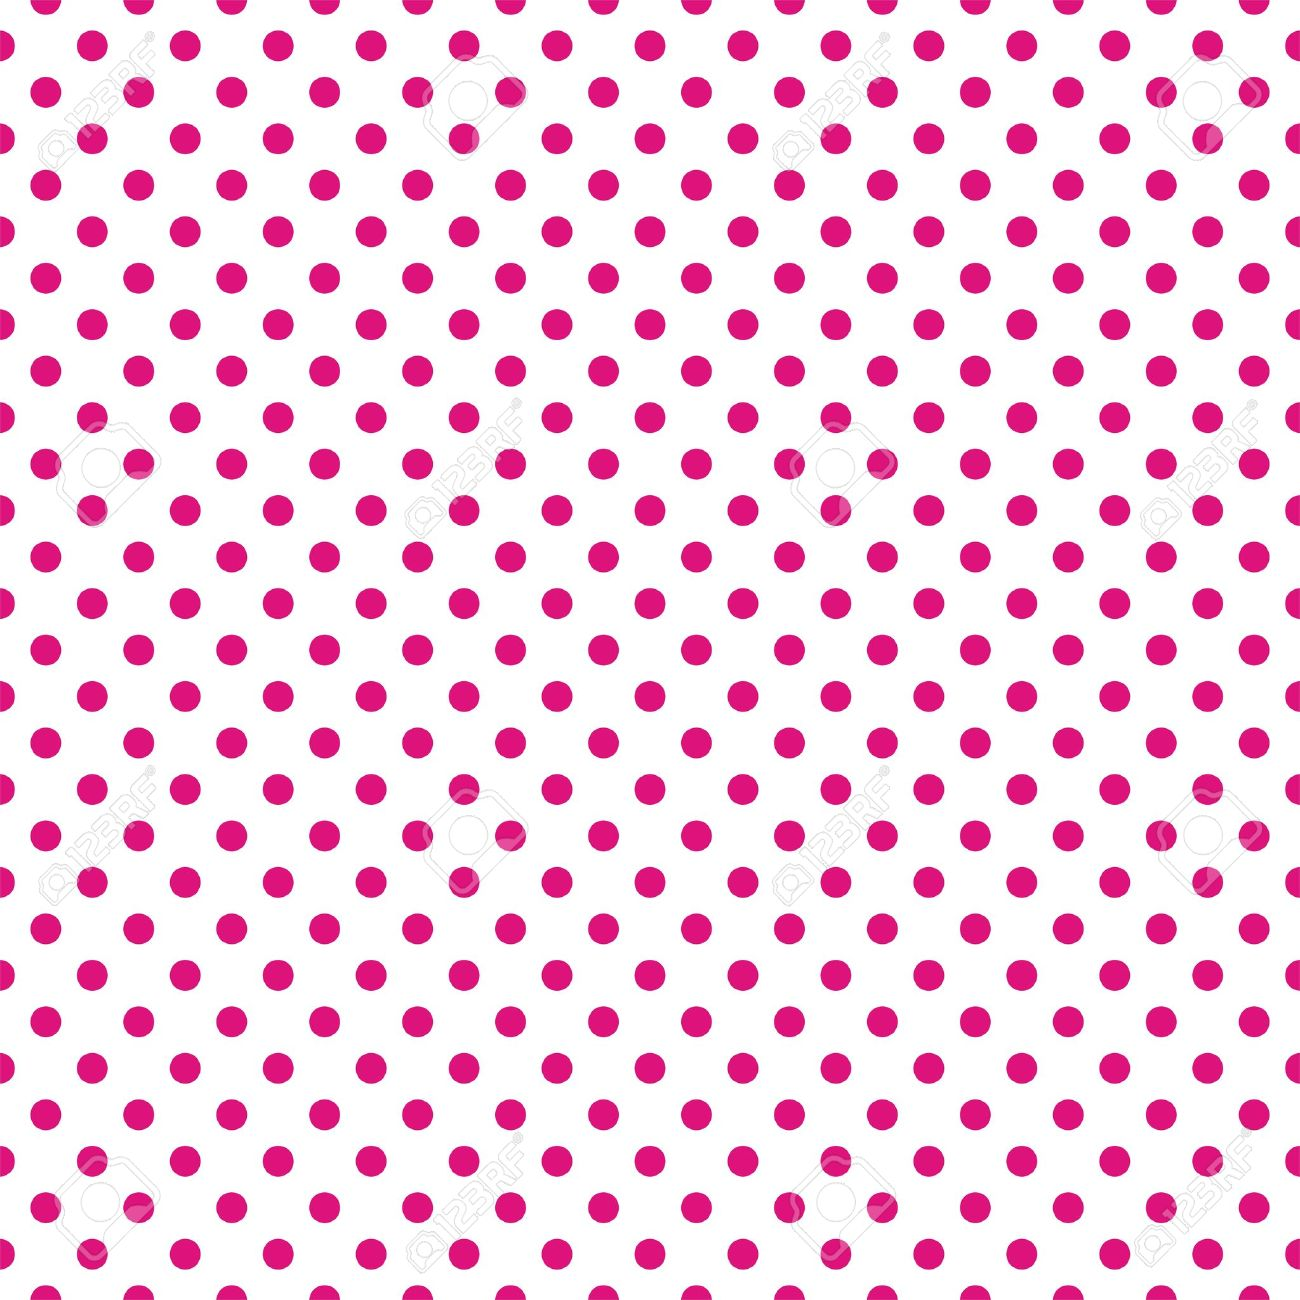 Pics photos pink polka dot s wallpaper - Seamless Vector Pattern With Dark Pastel Pink Polka Dots On White Background For Cards Invitations